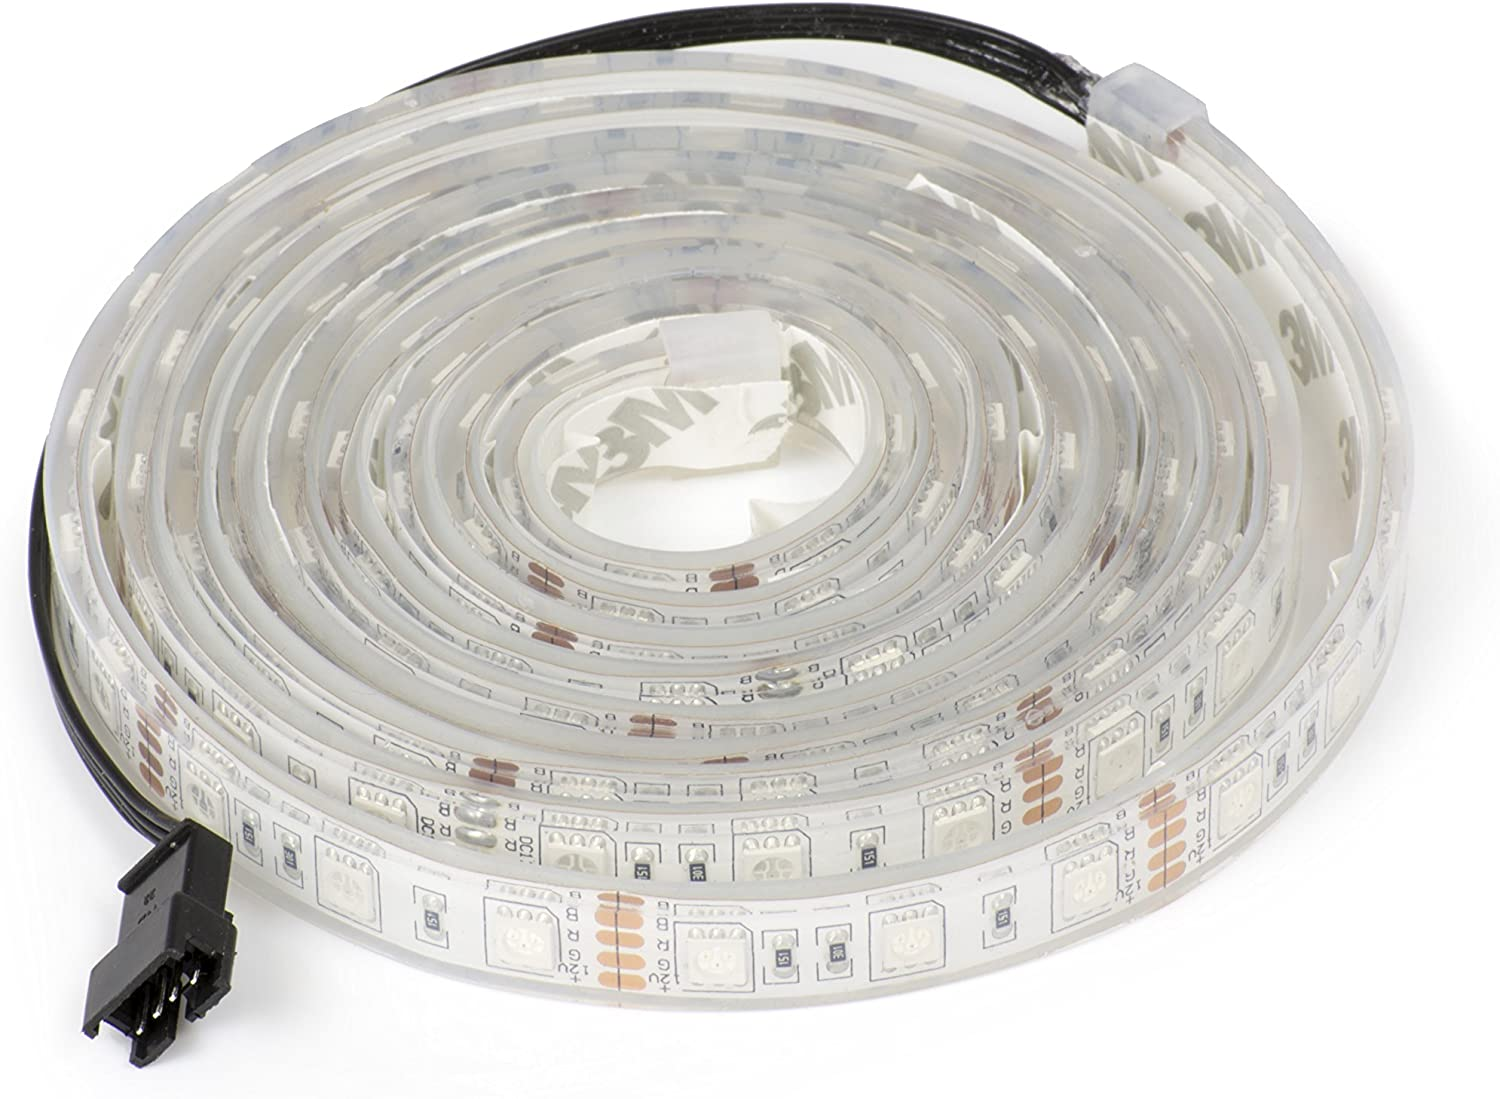 LED Strips 2 Meter Enthoo Luxe Case